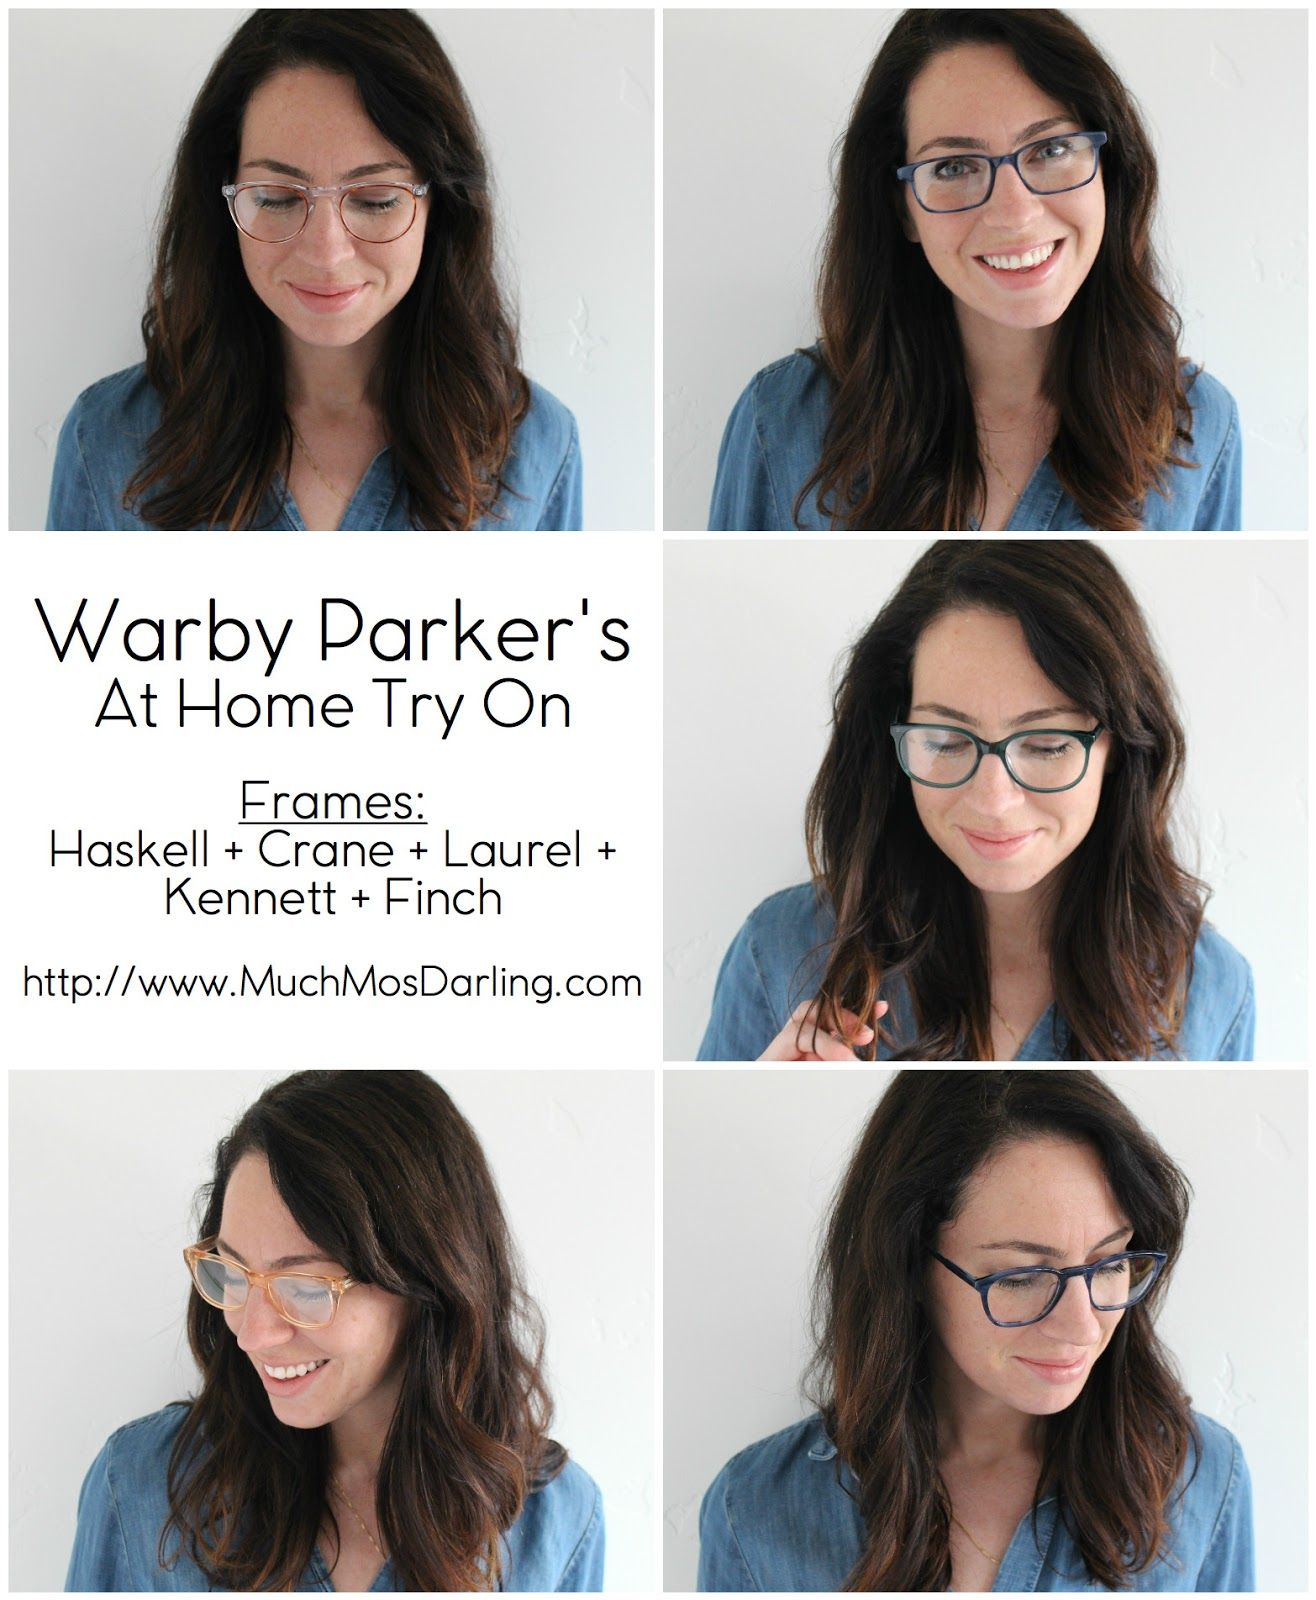 224ac1a210 Warby Parker s At Home Try On Program  4